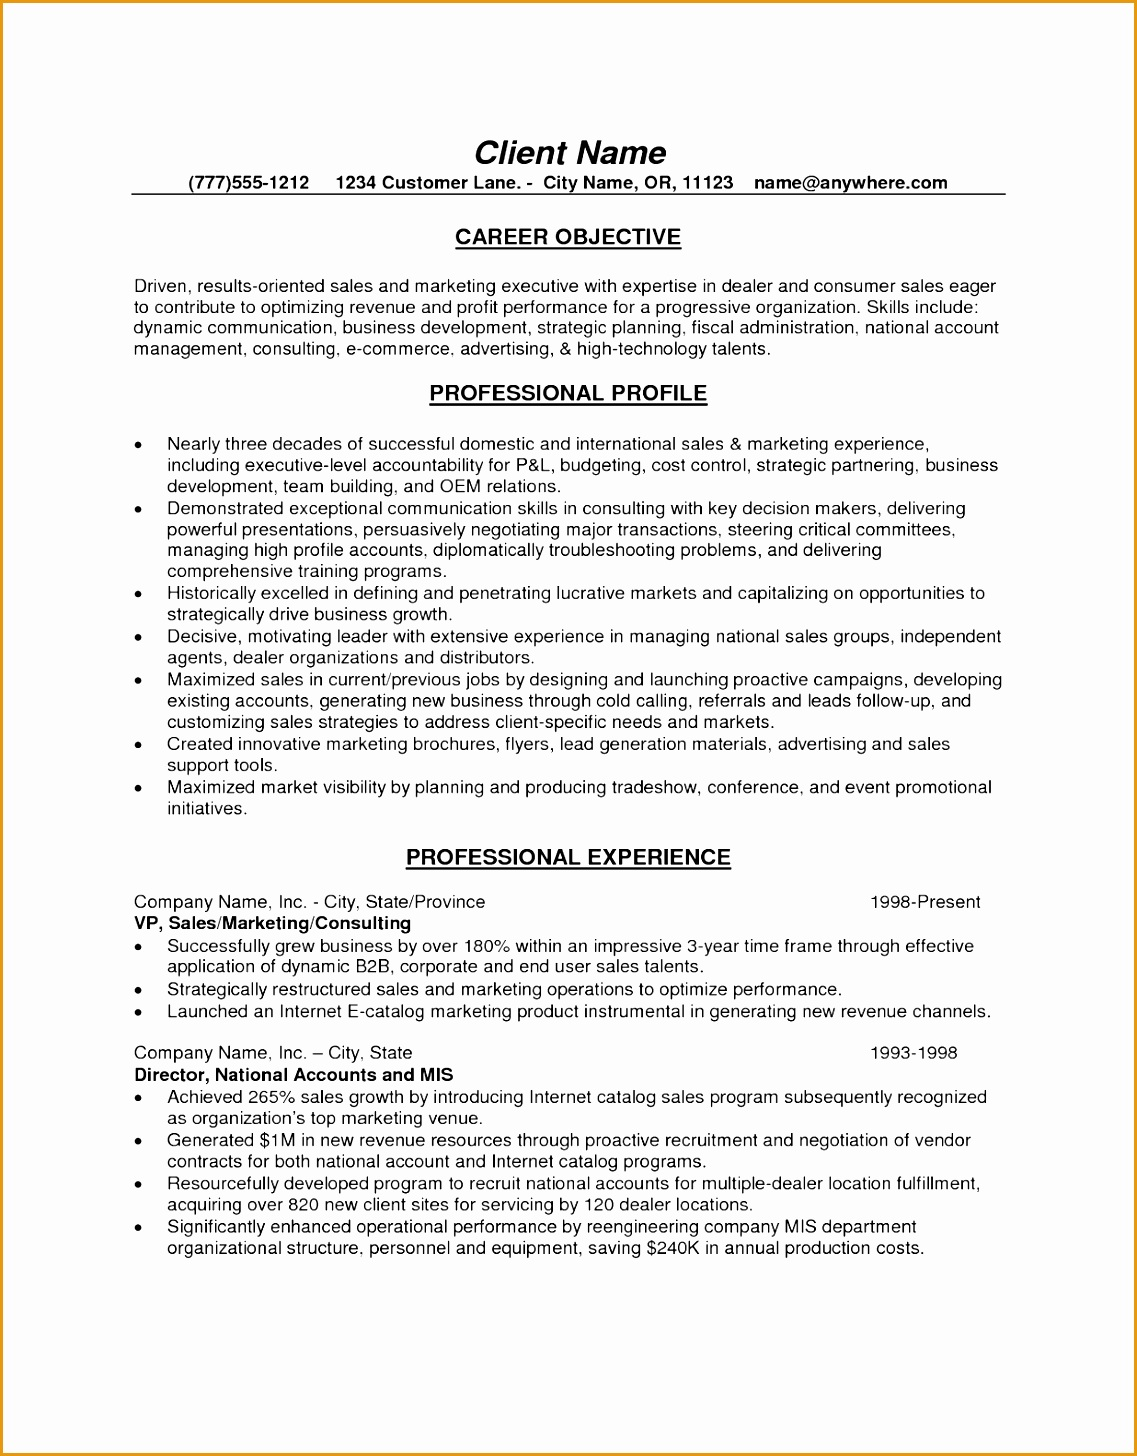 Sample Resume Format For Sales Executive 5 Marketing Operations Executive Resume Free Samples